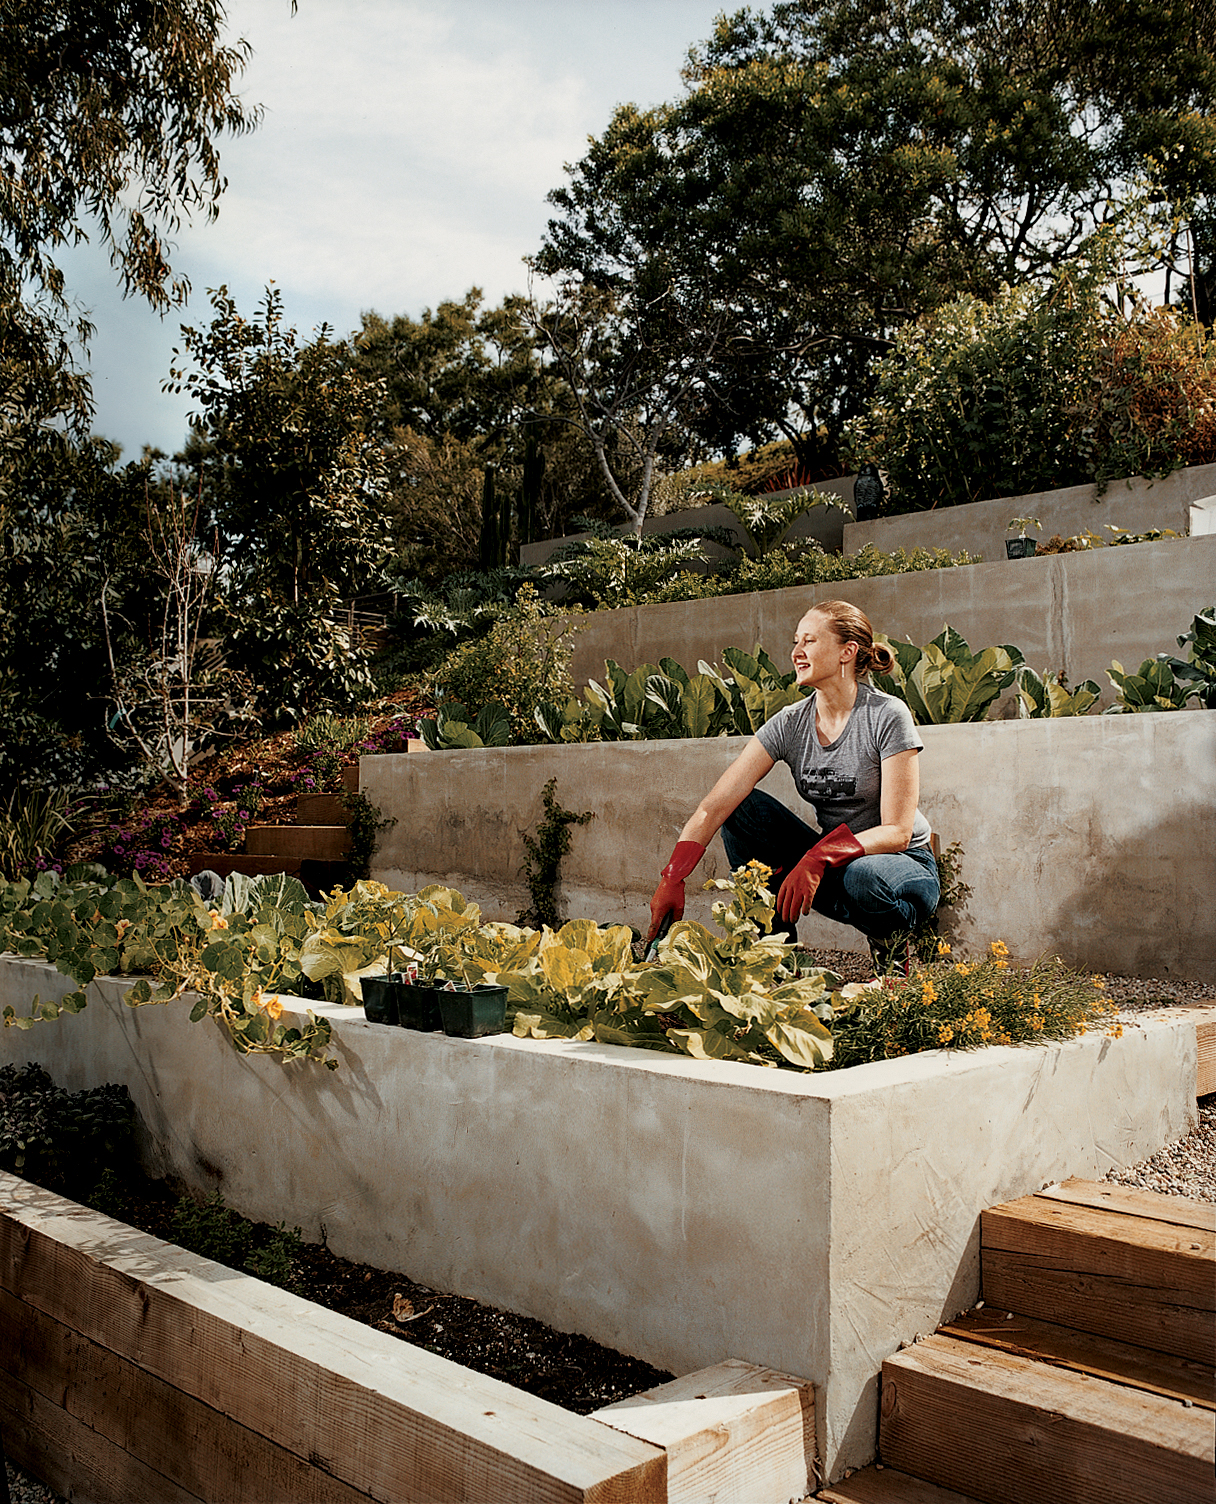 Wakeland goes to work on the garden terraces where the couple grows much of their own food.